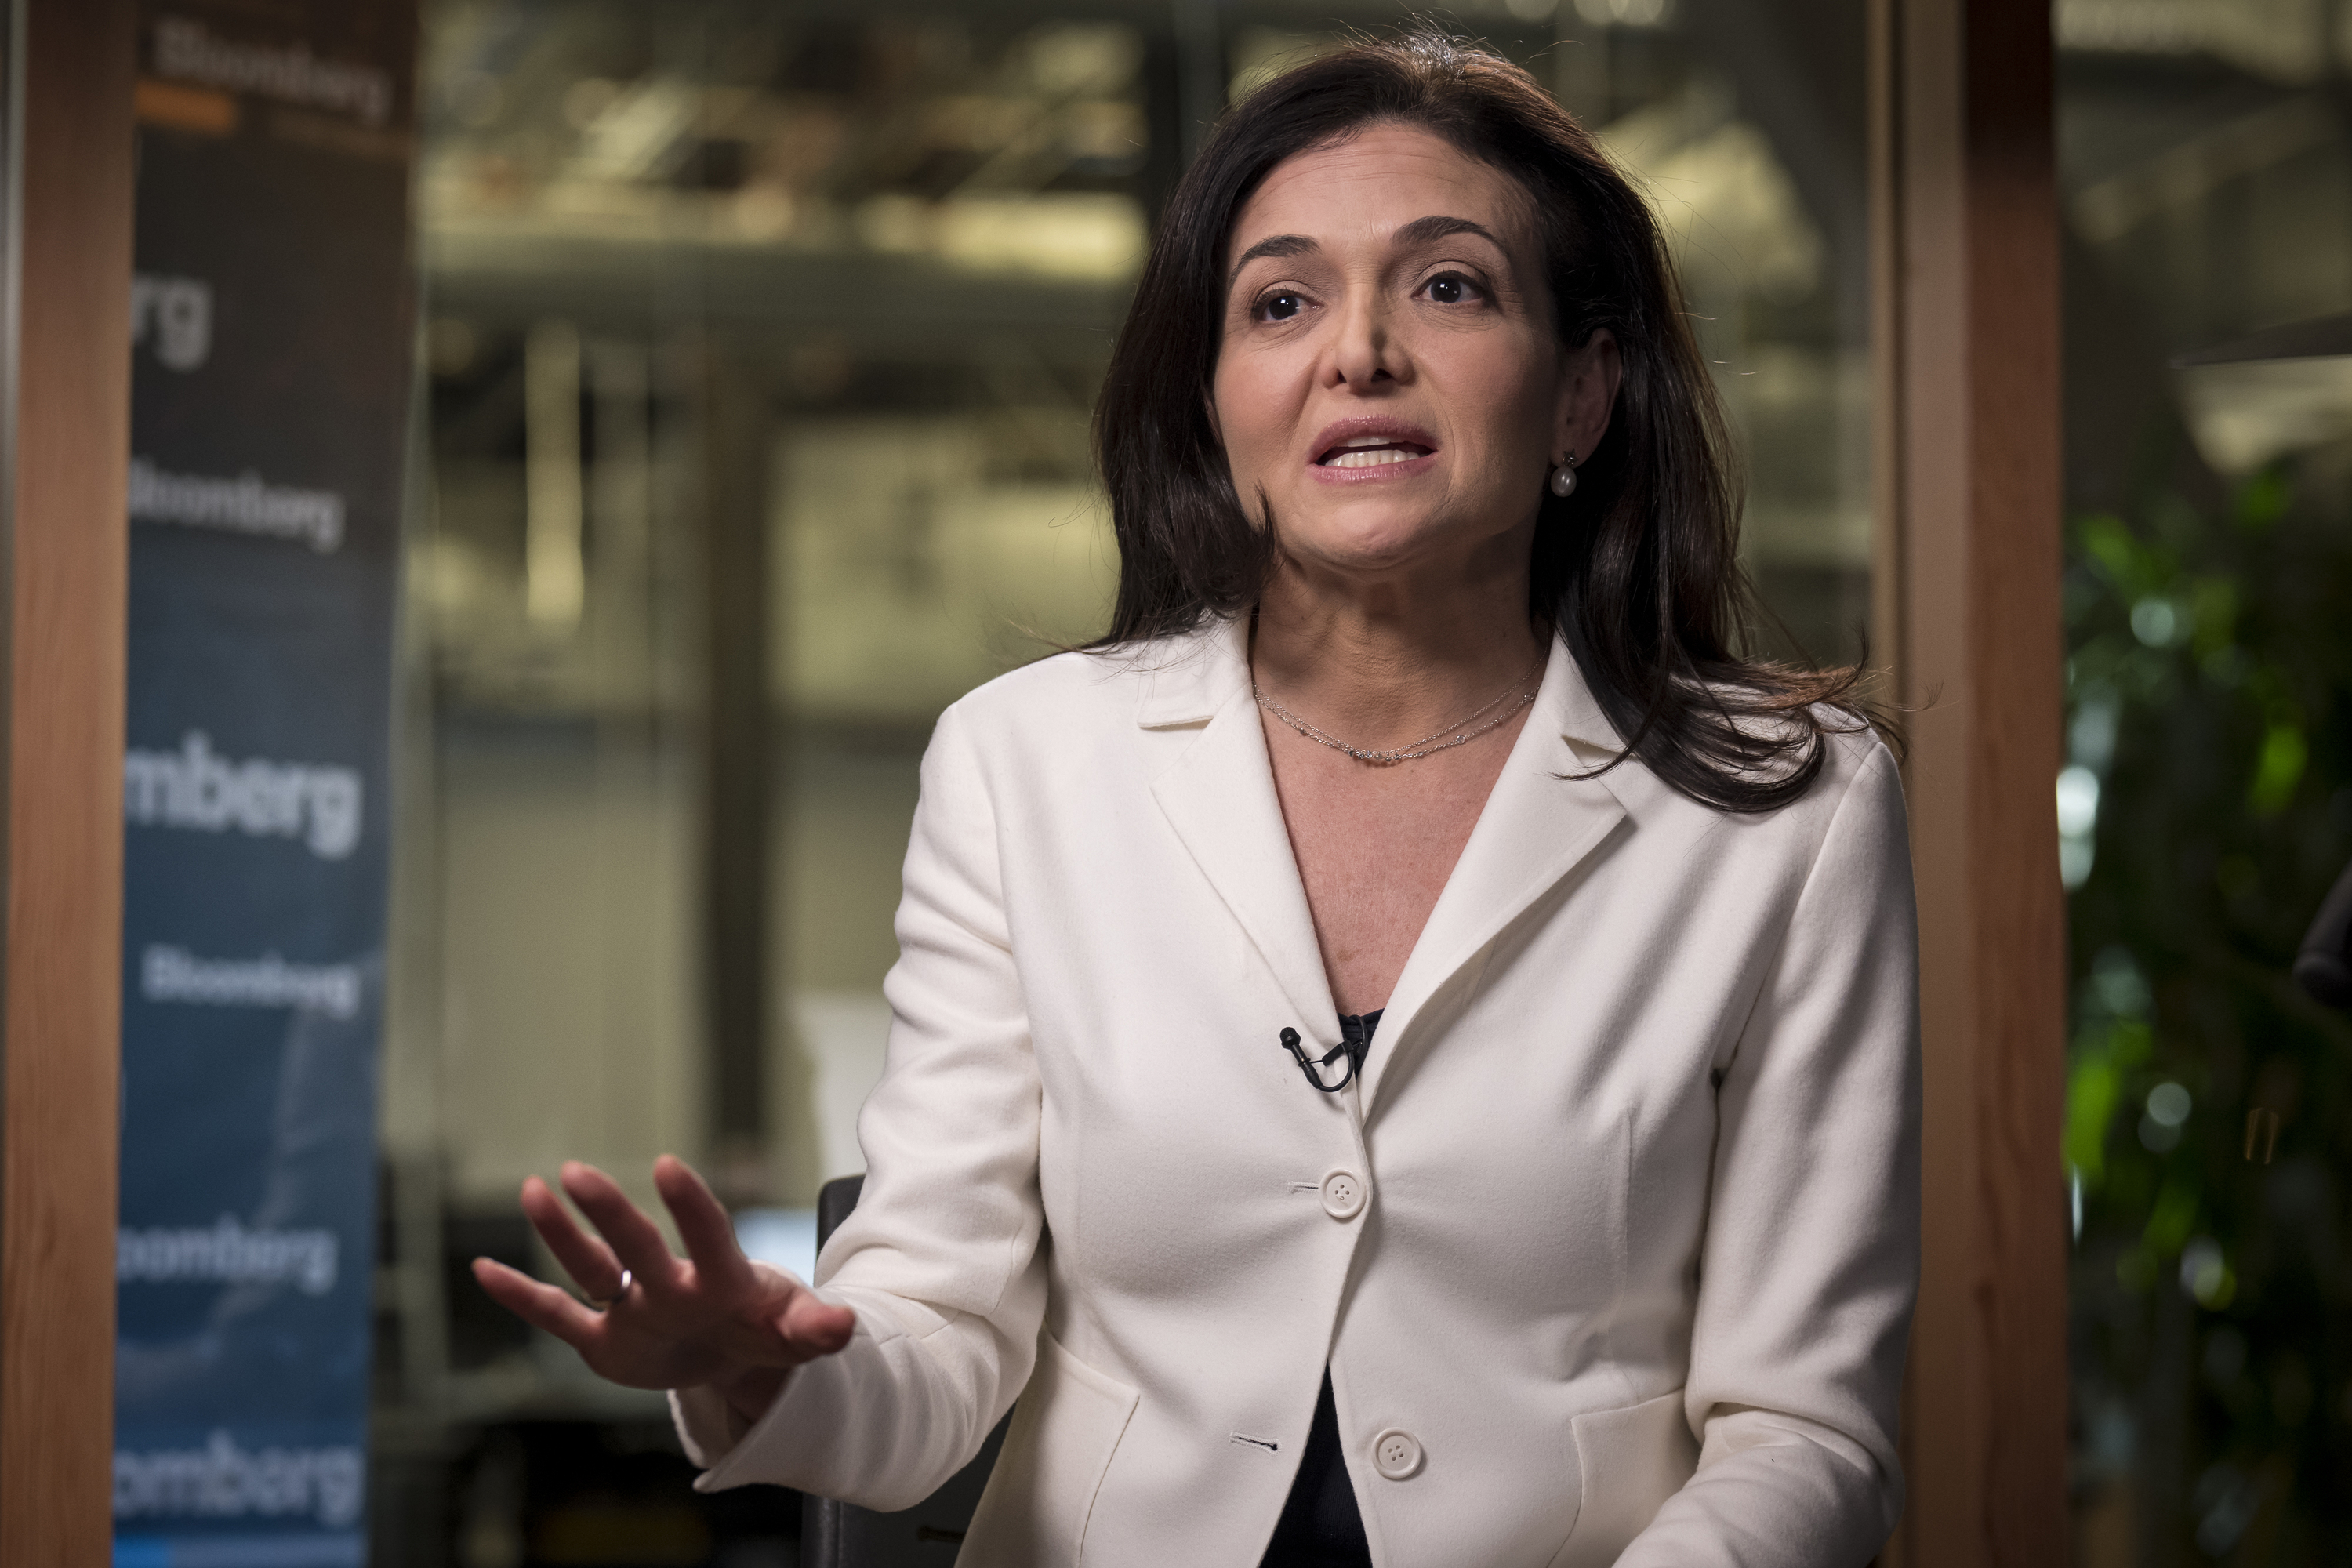 Sheryl Sandberg insists Facebook 'filter bubble' problem is misunderstood